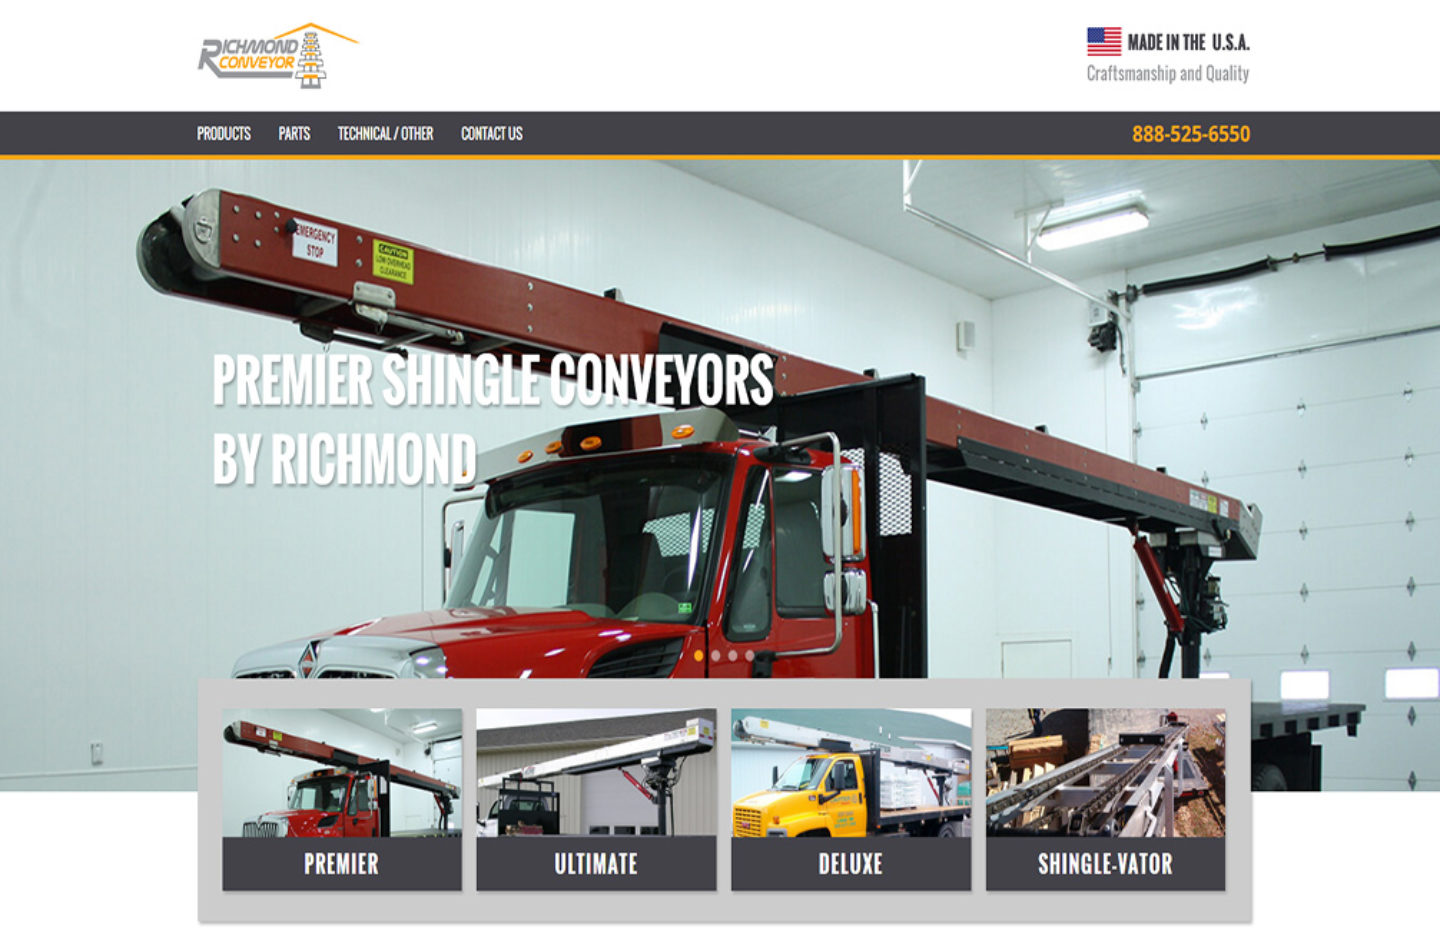 Richmond Conveyors